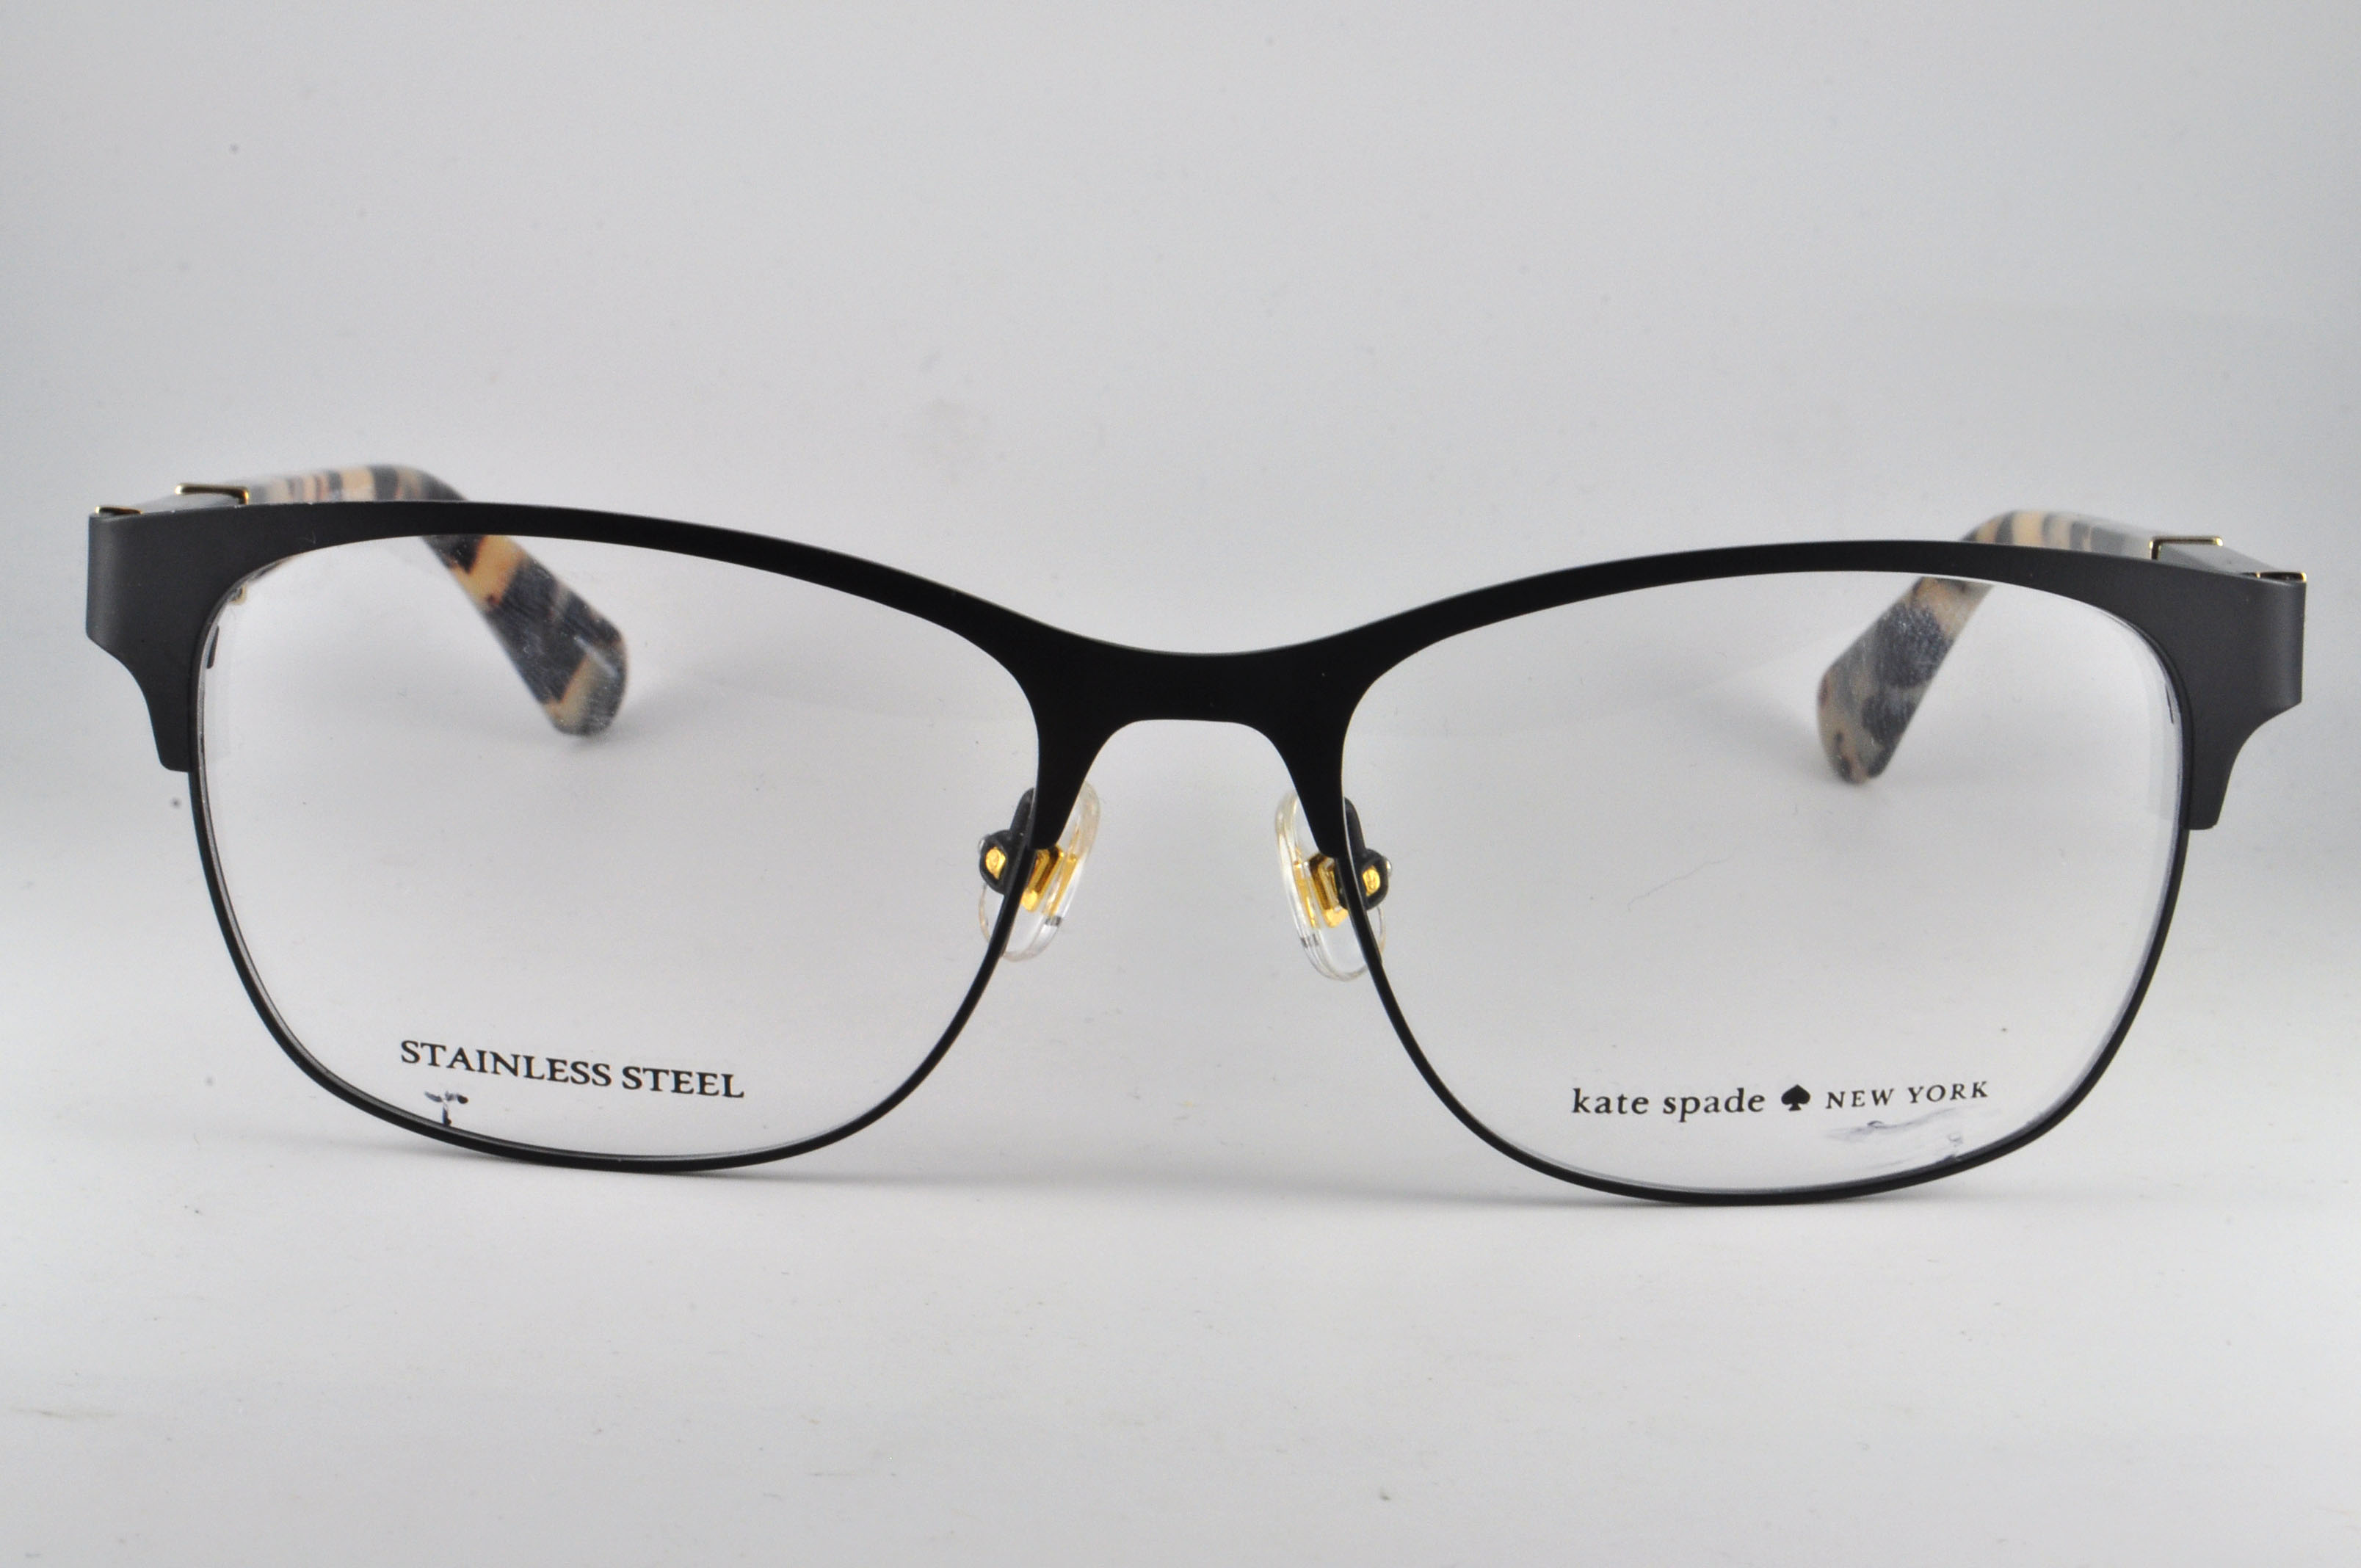 c0f67609ec ... Picture 2 of 5  Picture 3 of 5  Picture 4 of 5. 2. Kate Spade  Eyeglasses BENEDETTA 0003 Matte ...